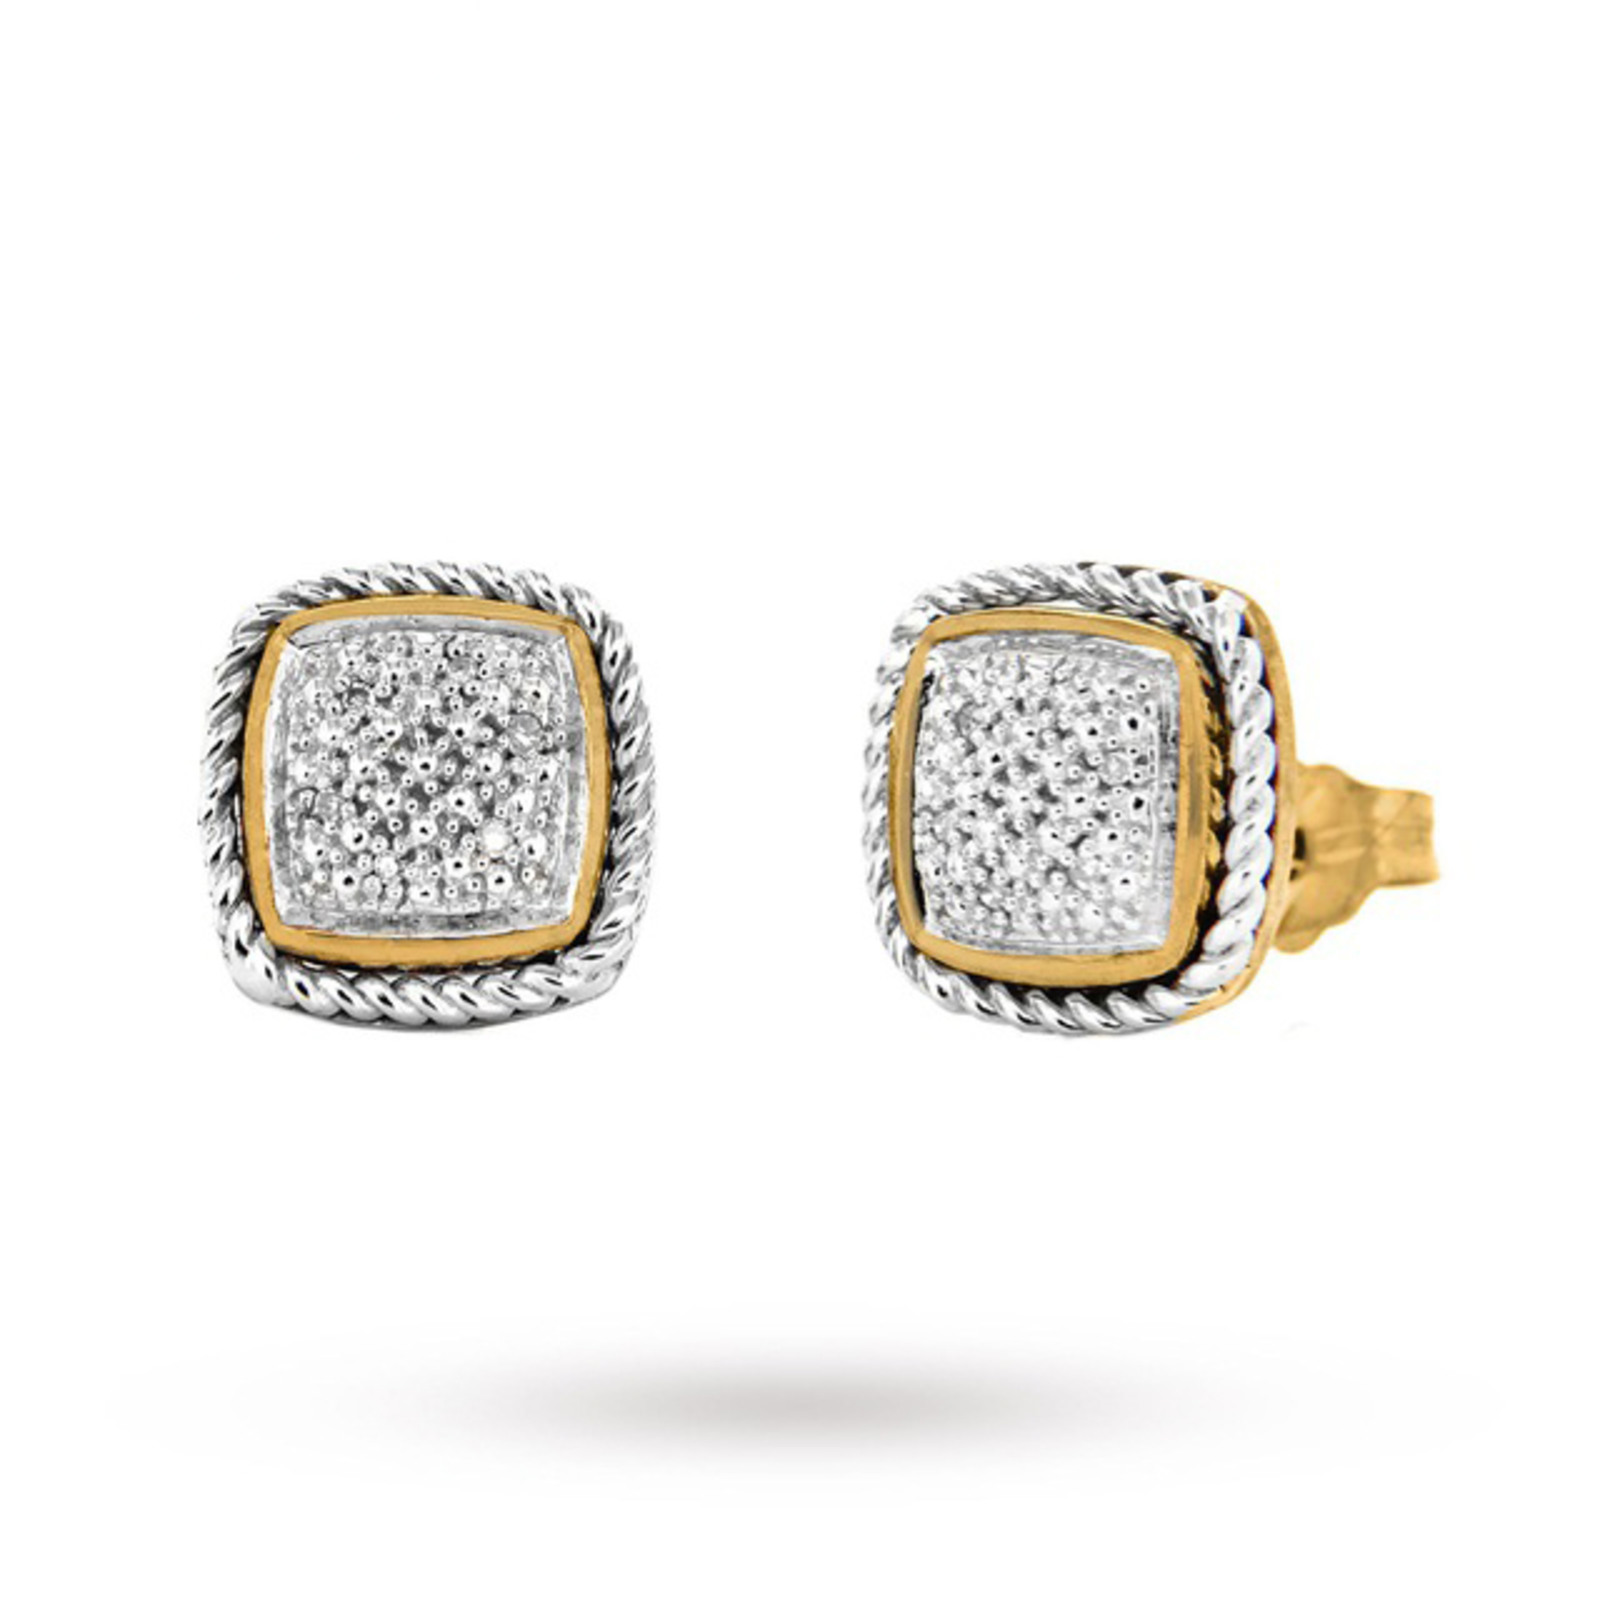 princess men cut diamond buy carat gold round s earrings stud whwh gh white baguette studs square main